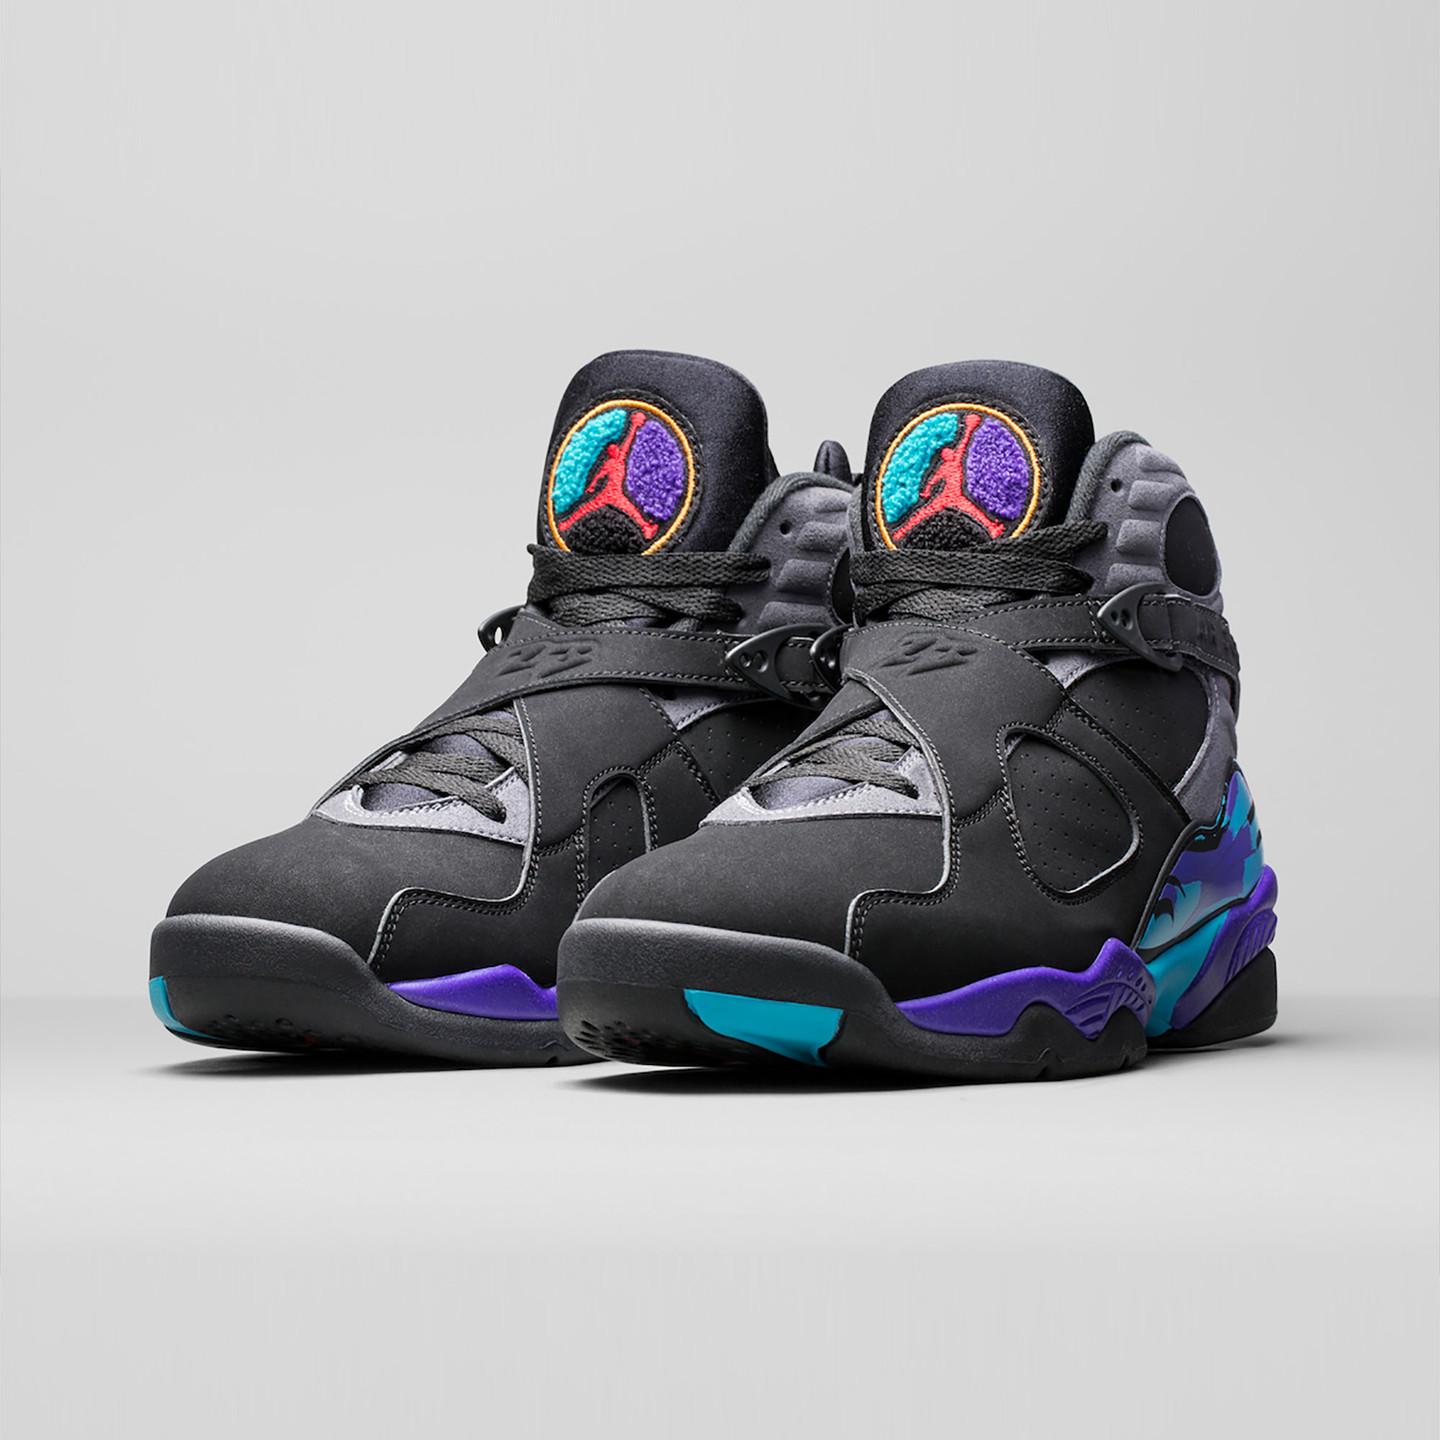 Jordan Air Jordan Retro 8 'Aqua' Black/True Red-Flint Grey-Bright Concord 305381-025-42